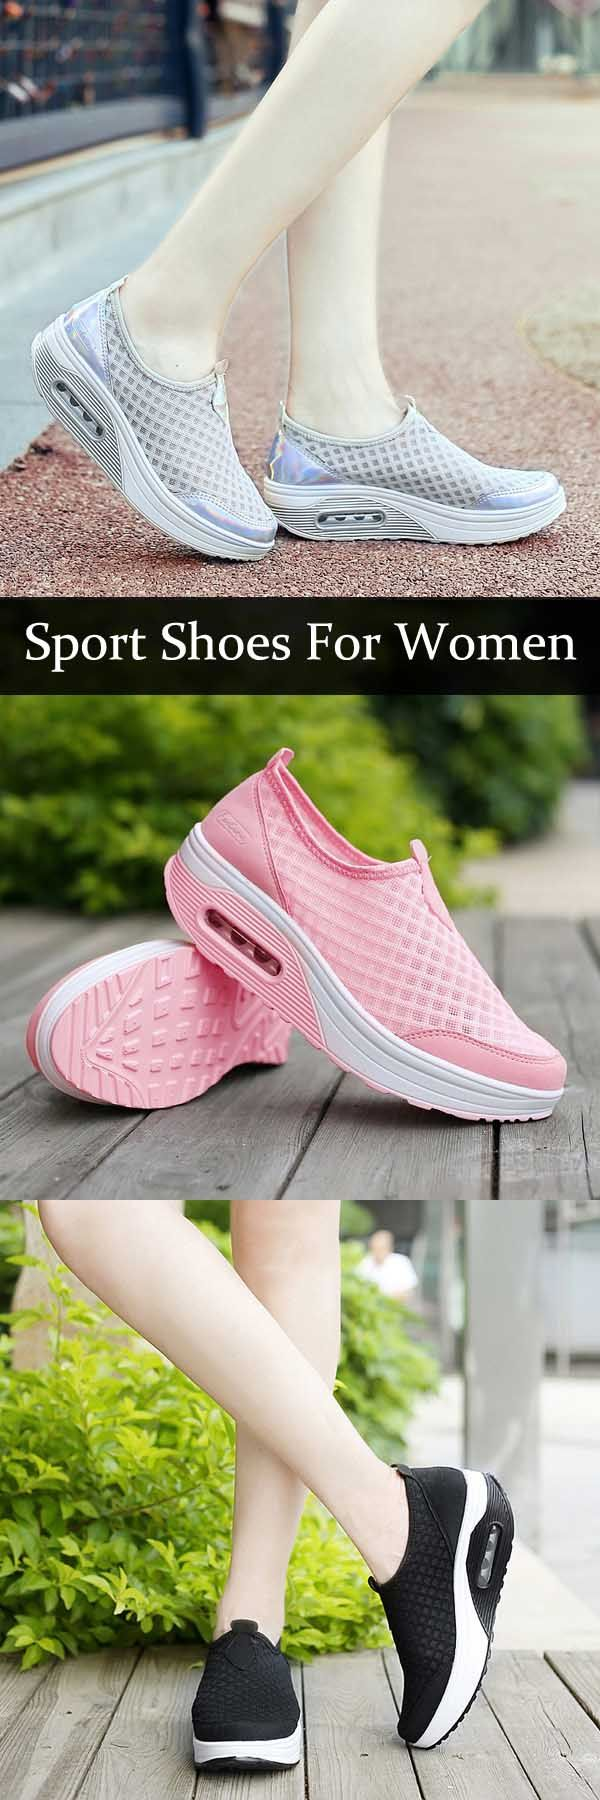 US$29.99+Free shipping. Women Shoes, Sports Shoes, Running Shoes, Ladies Running Shoes, Outdoor Shoes. Color: Black, Gray, Pink, Blue.